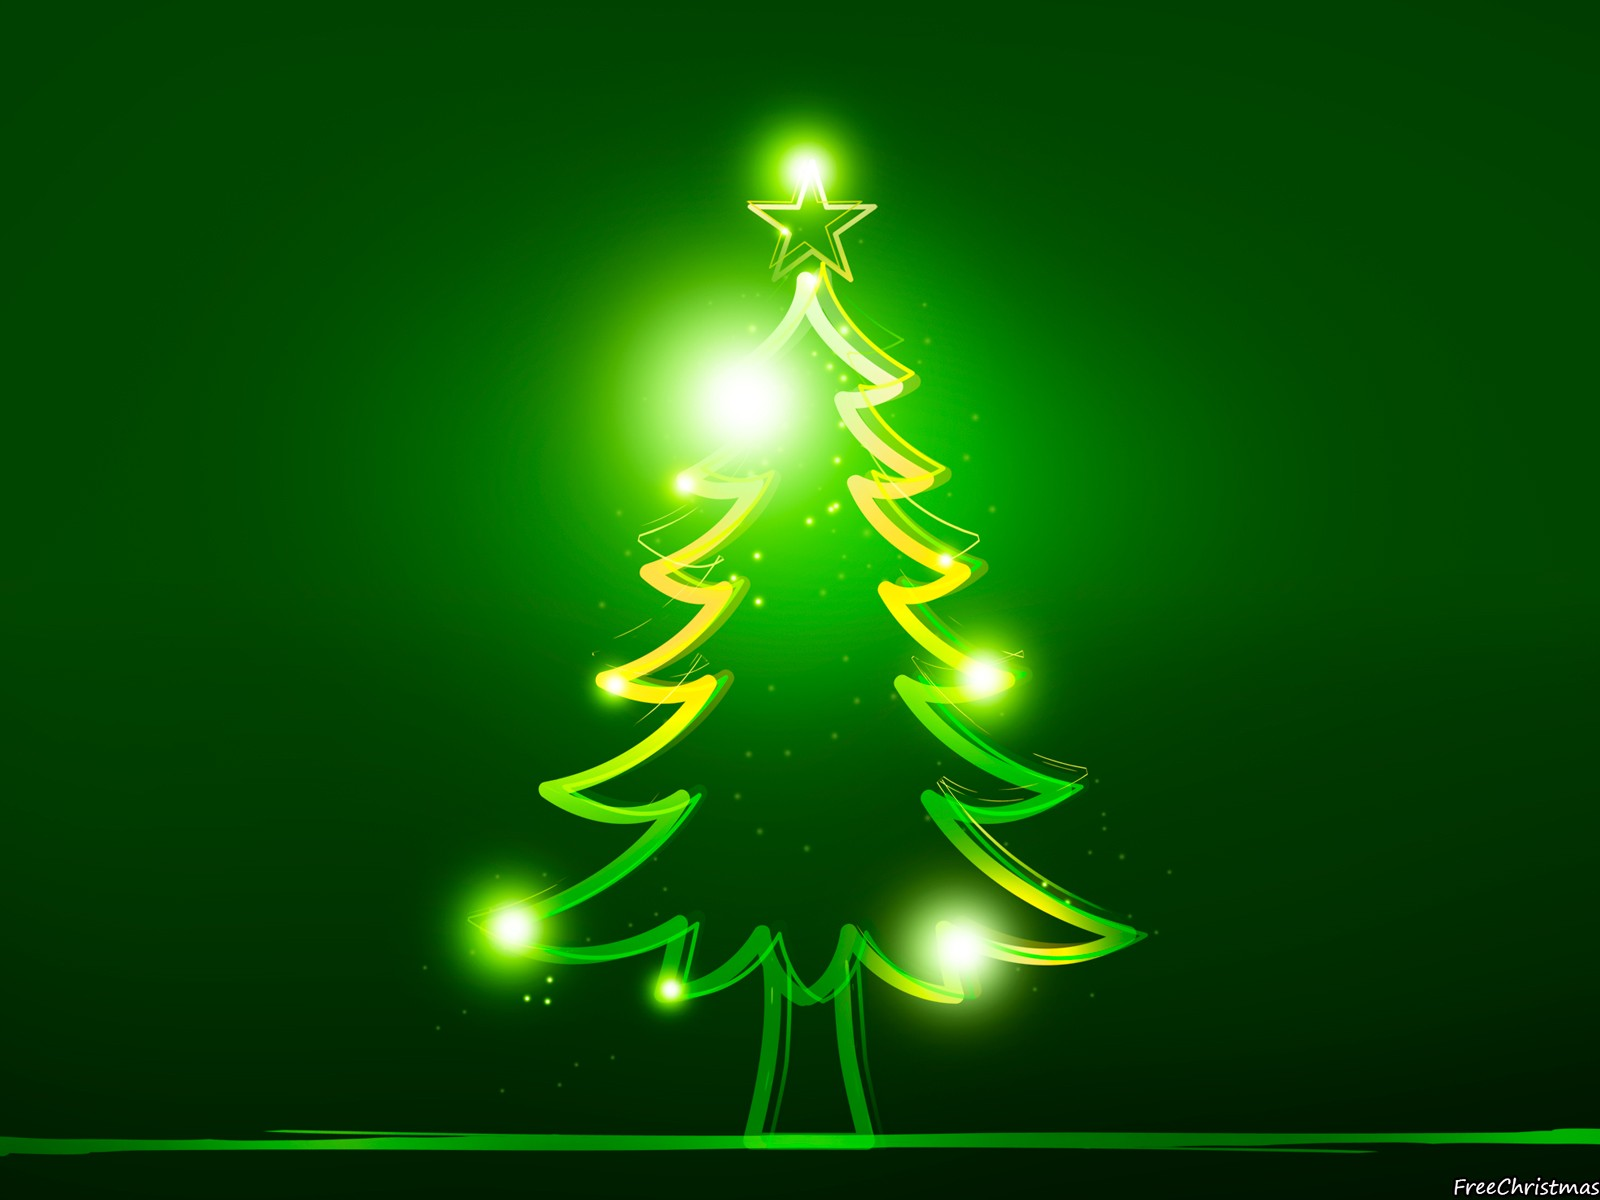 Green Christmas Tree With Bulbs